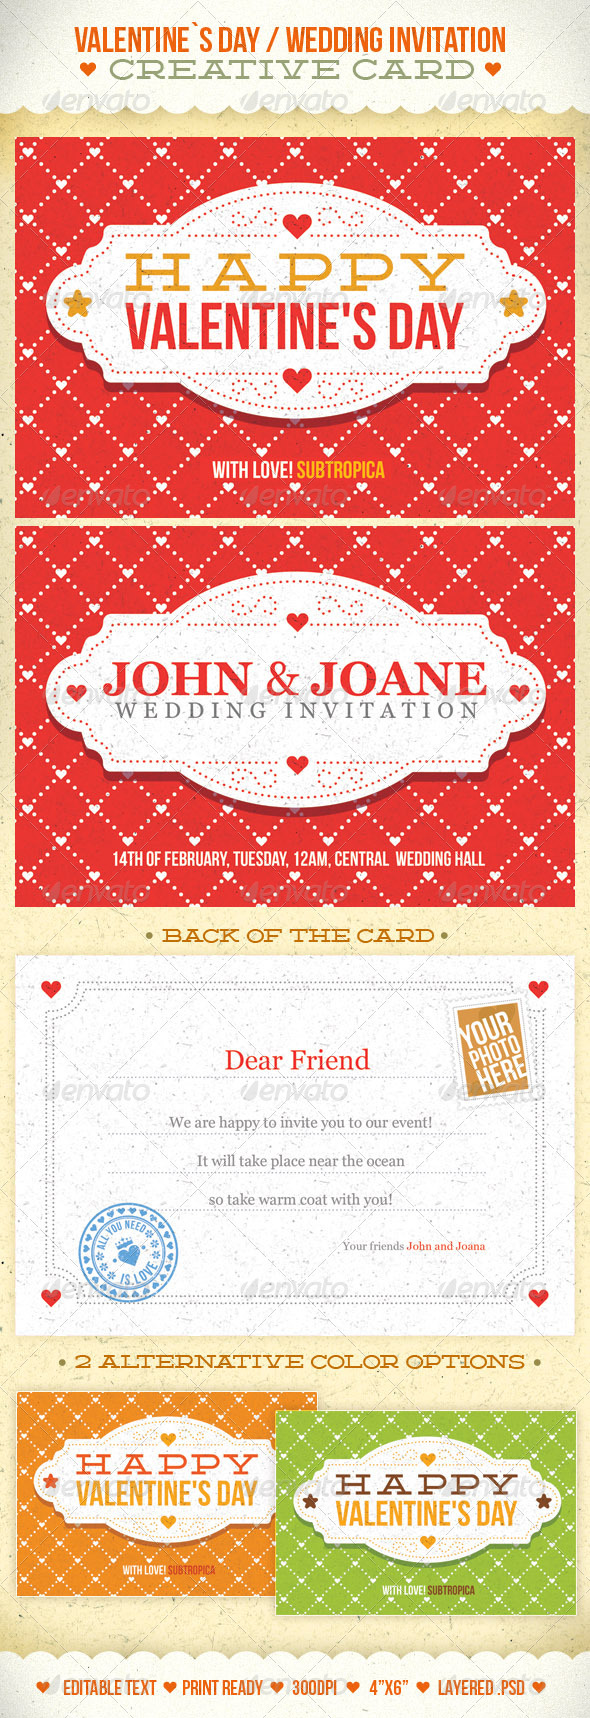 Valentine's Day And Wedding Invitation Postcard - Holiday Greeting Cards